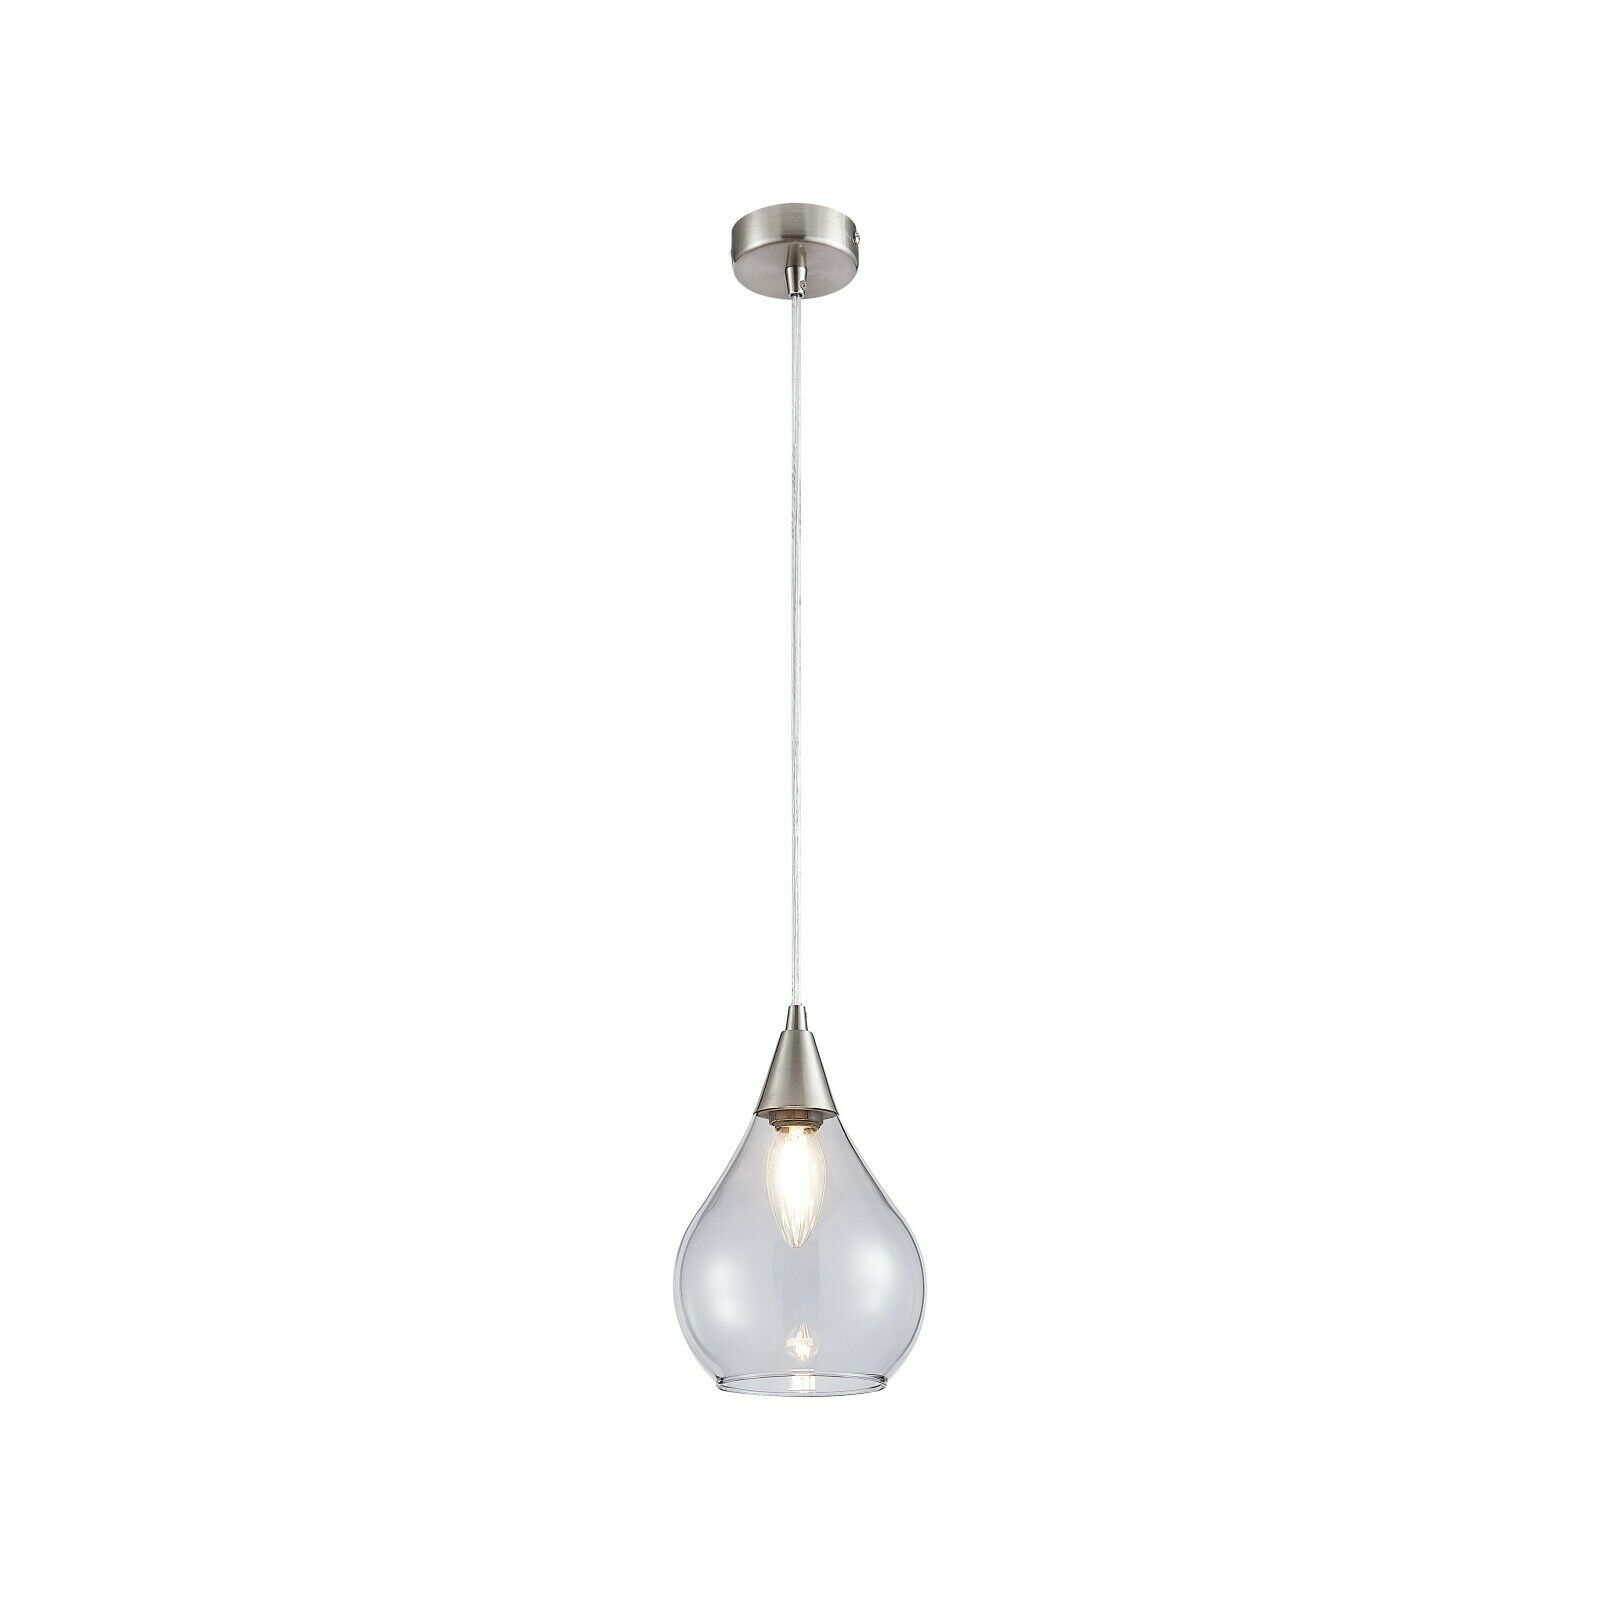 Leuchten Bilder Nino Leuchten Cami 1 Light Glass Ceiling Pendant, Smoky Glass Shade | Ebay